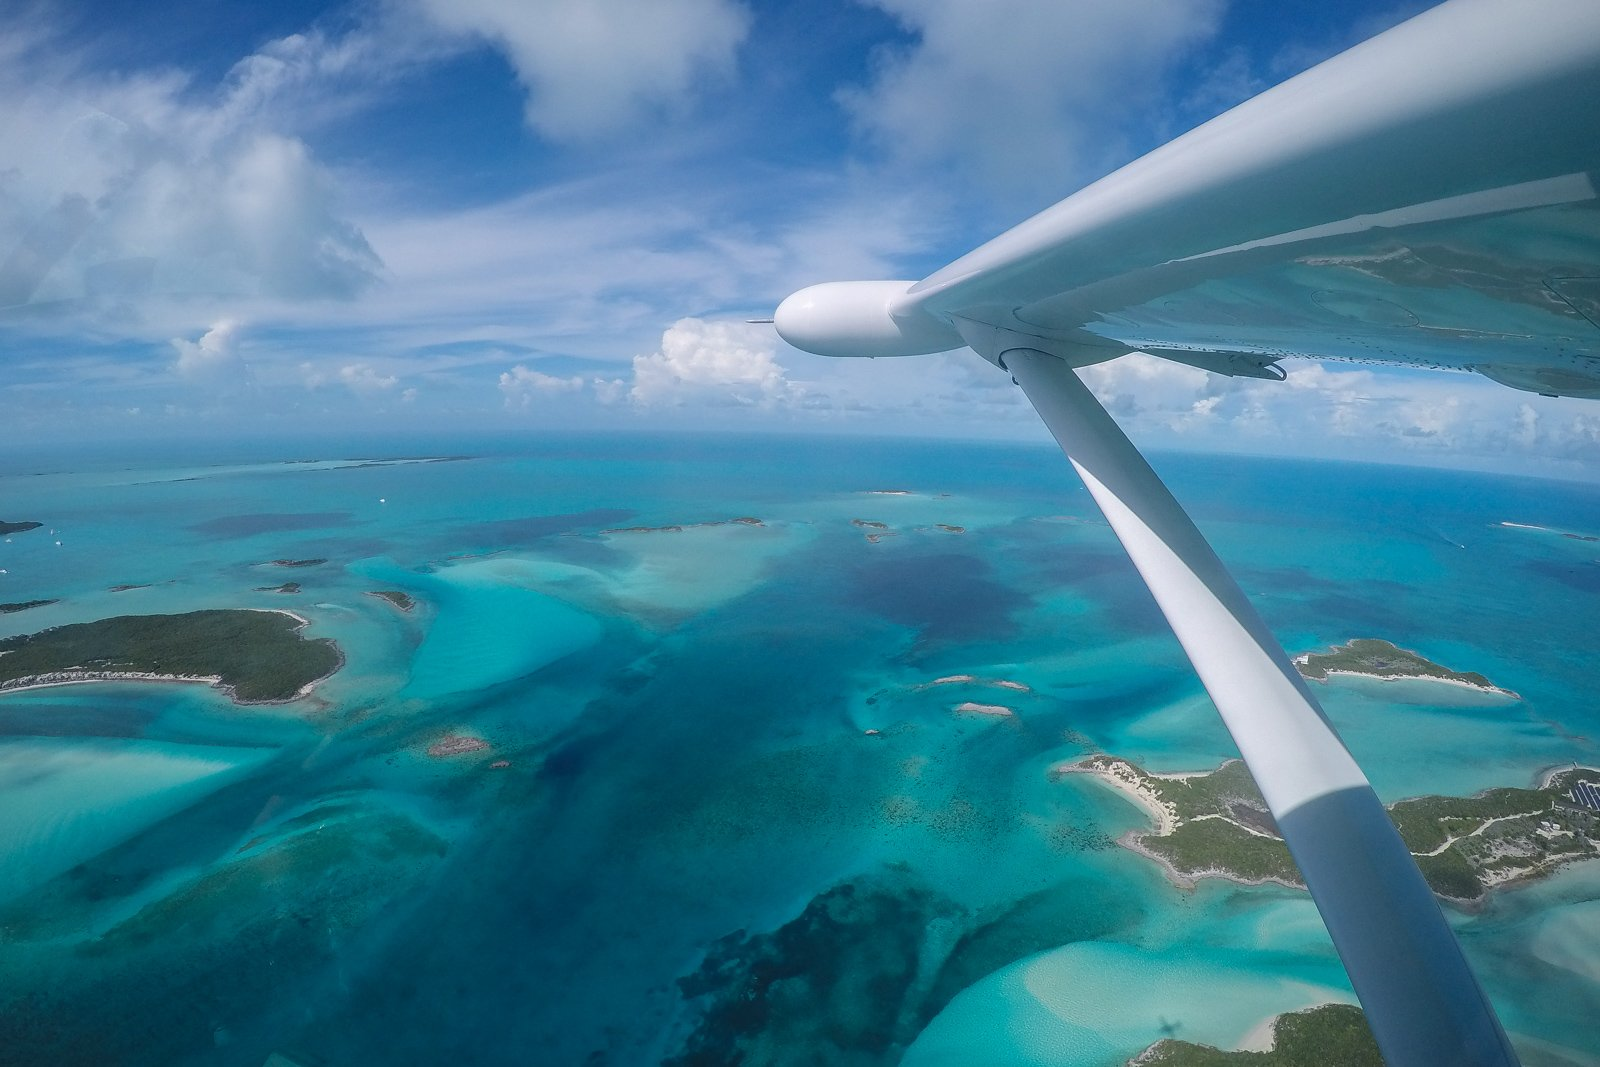 Miami to Bahamas tour by plane to Staniel Cay, flying over the Exumas